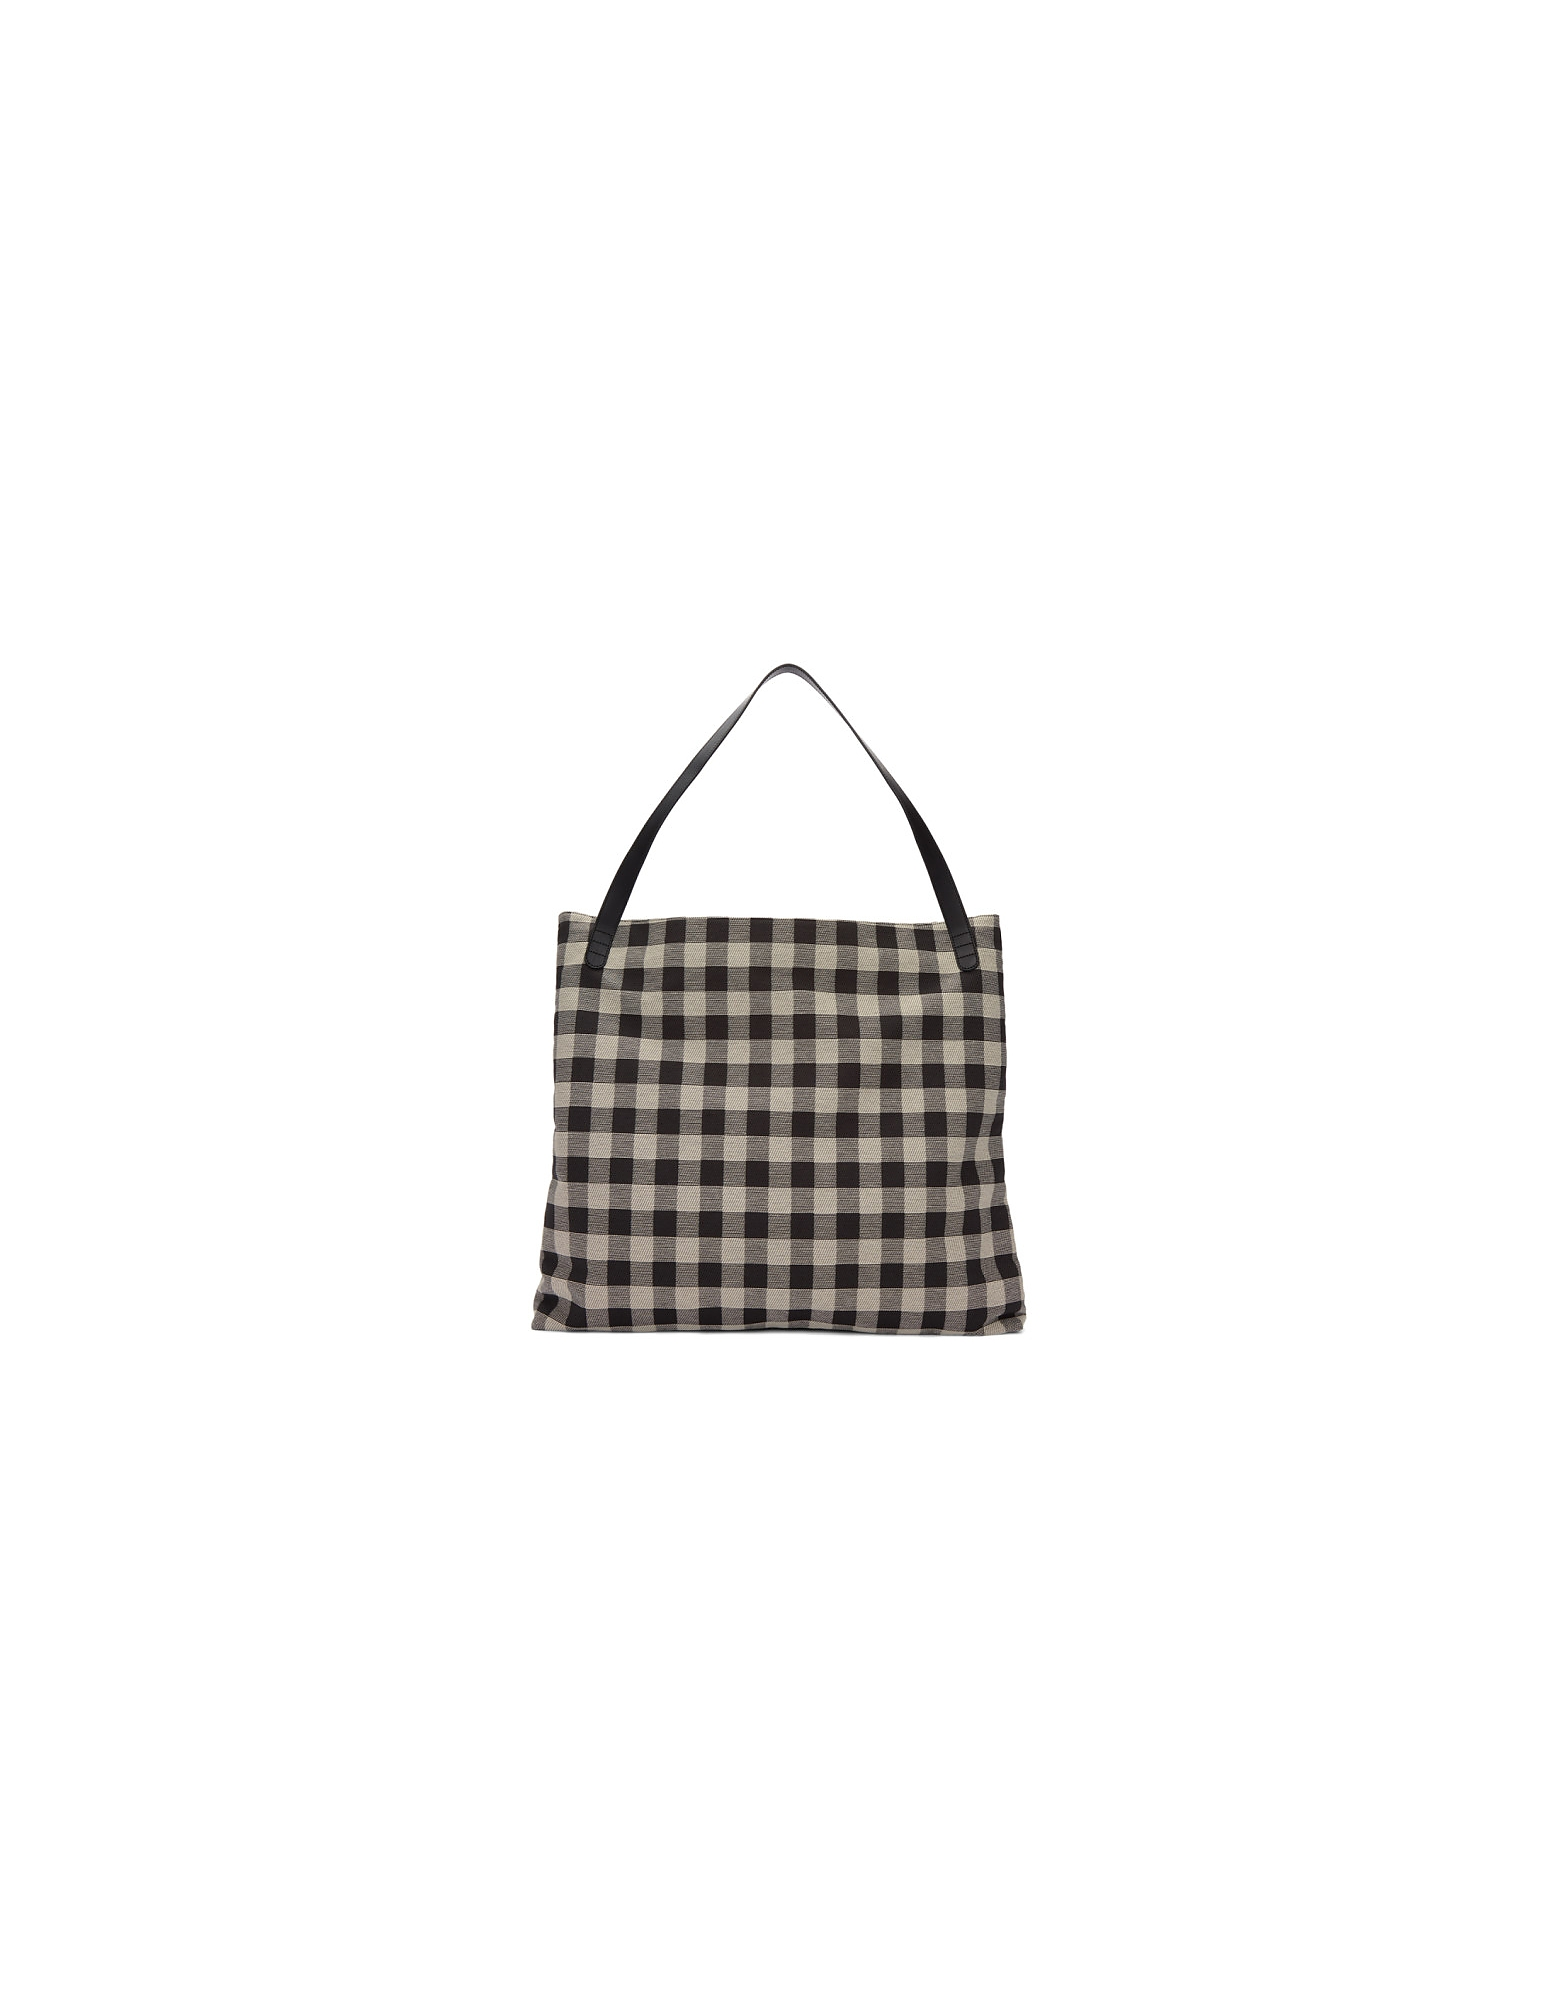 Mansur Gavriel Designer Handbags, Black and White Oversized Shoulder Hobo Bag